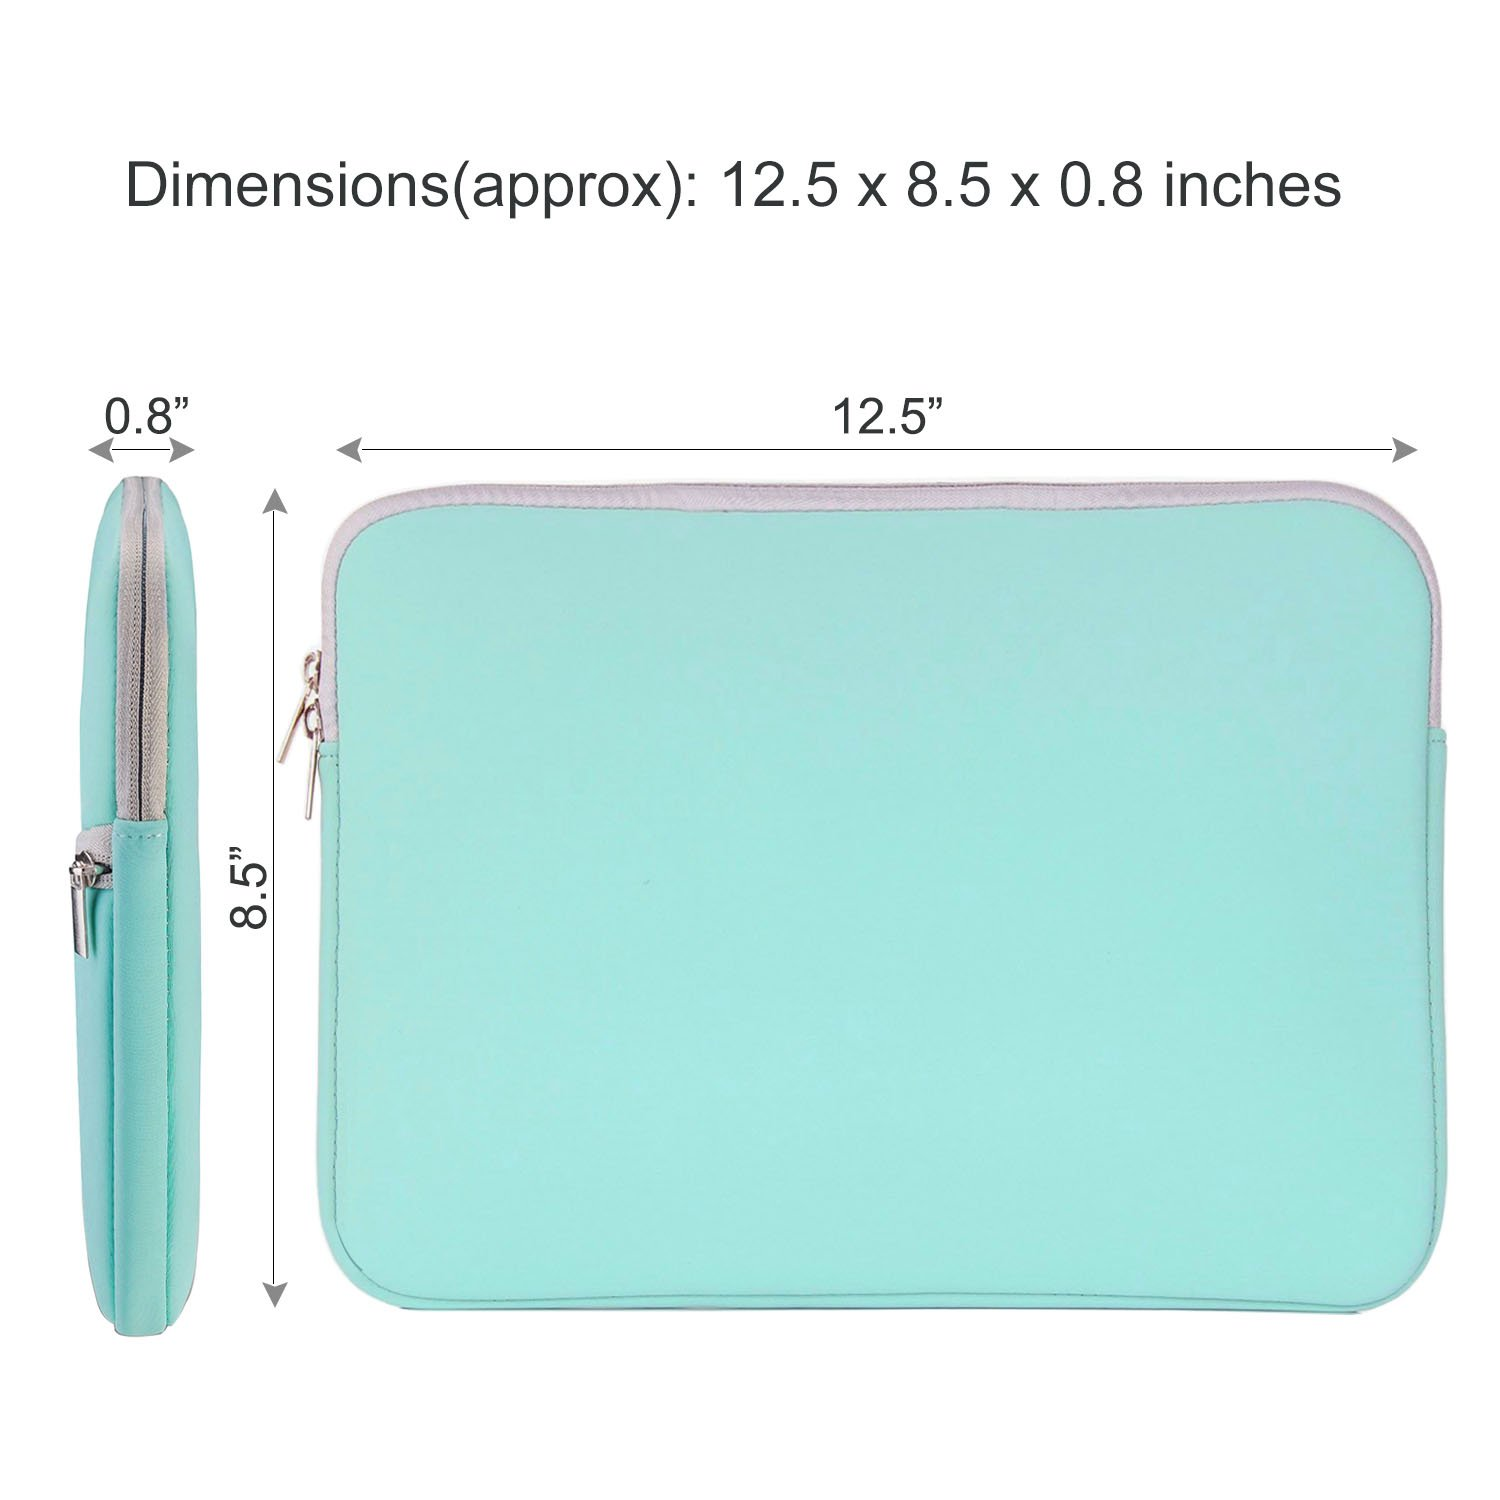 HESTECH Chromebook Case, 11.6-12.3 inch Neoprene Laptop Sleeve Case Bag Handle Compatible with Acer Chromebook r11/HP Stream/Samsung Chromebook/MacBook air 11/, Mint Green by HESTECH (Image #4)